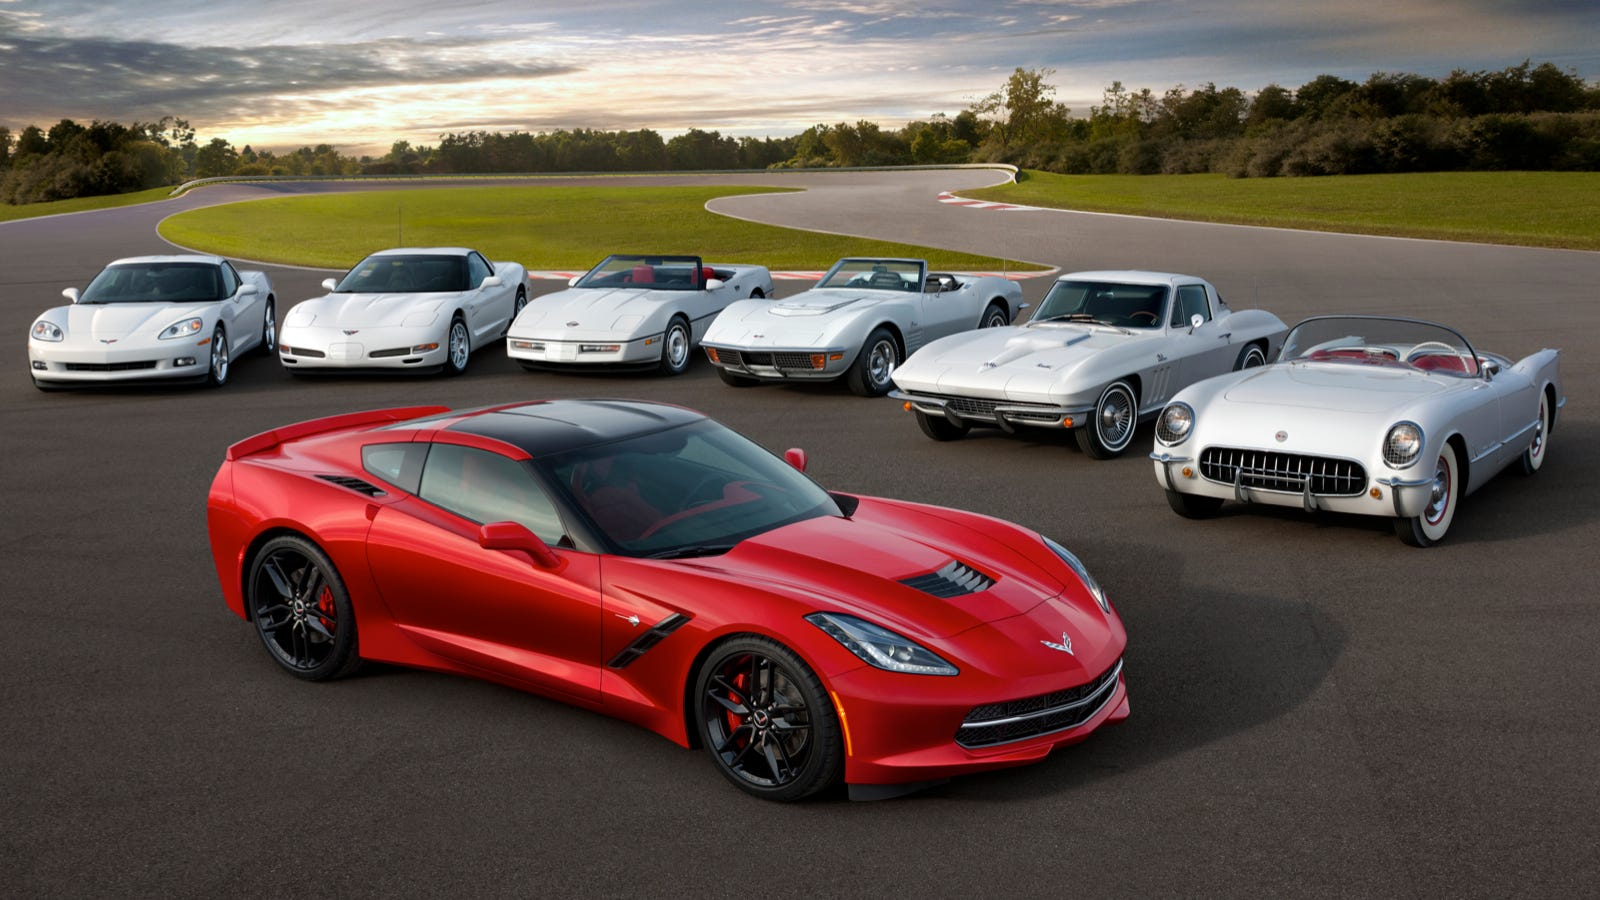 Here's Why The 2014 Corvette Stingray Will Be Better Than The C6